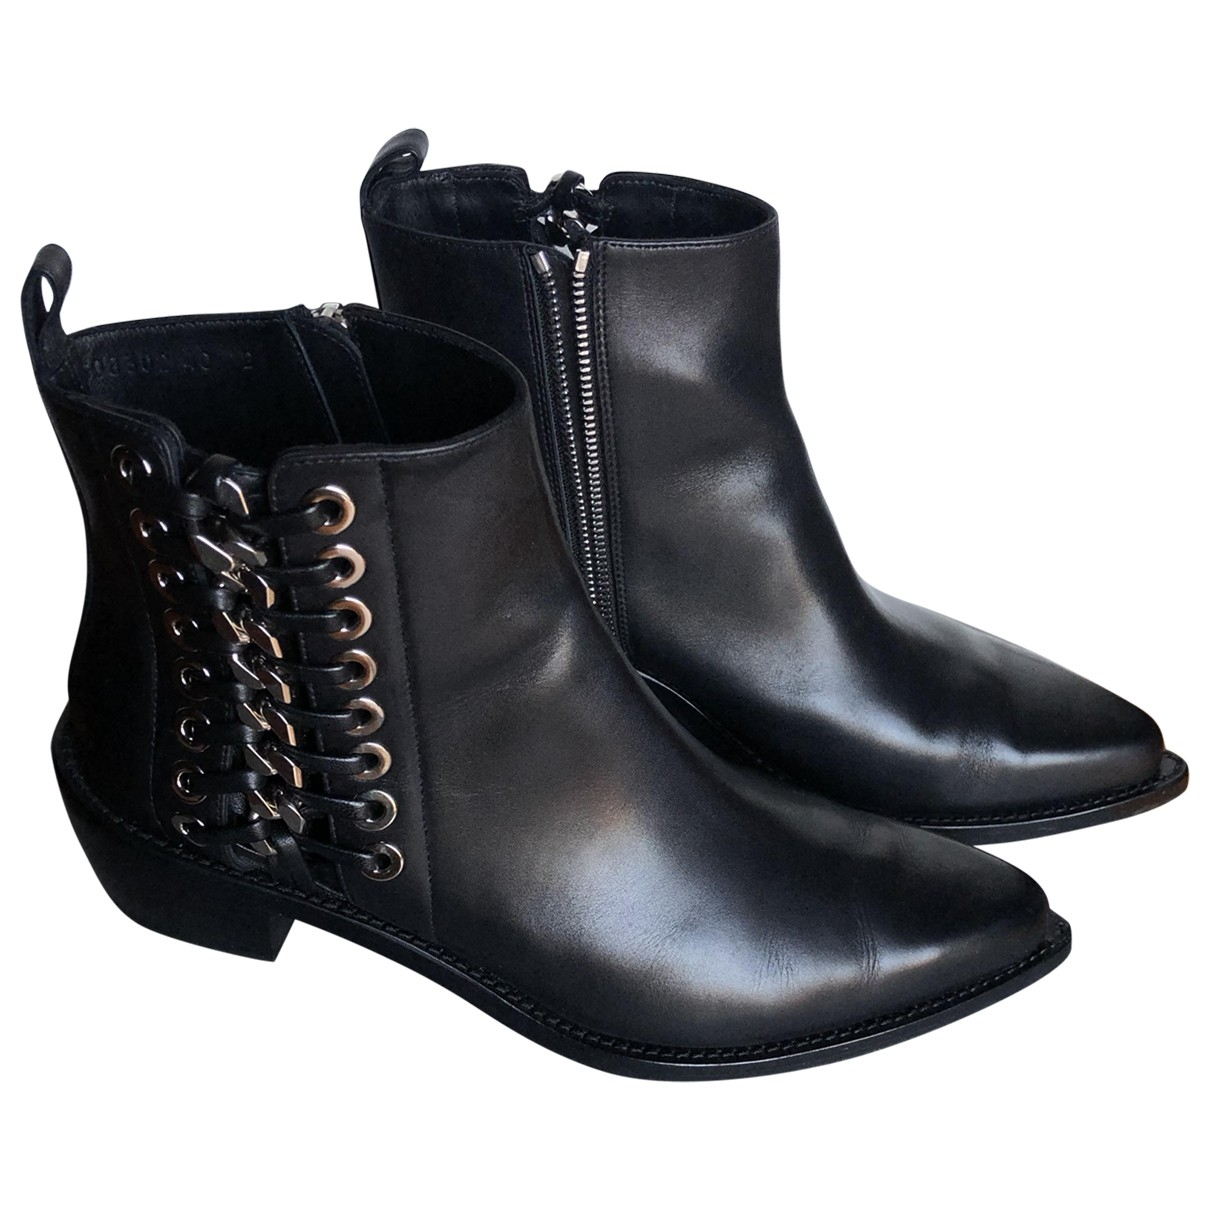 Alexander Mcqueen \N Black Leather Ankle boots for Women 40 EU